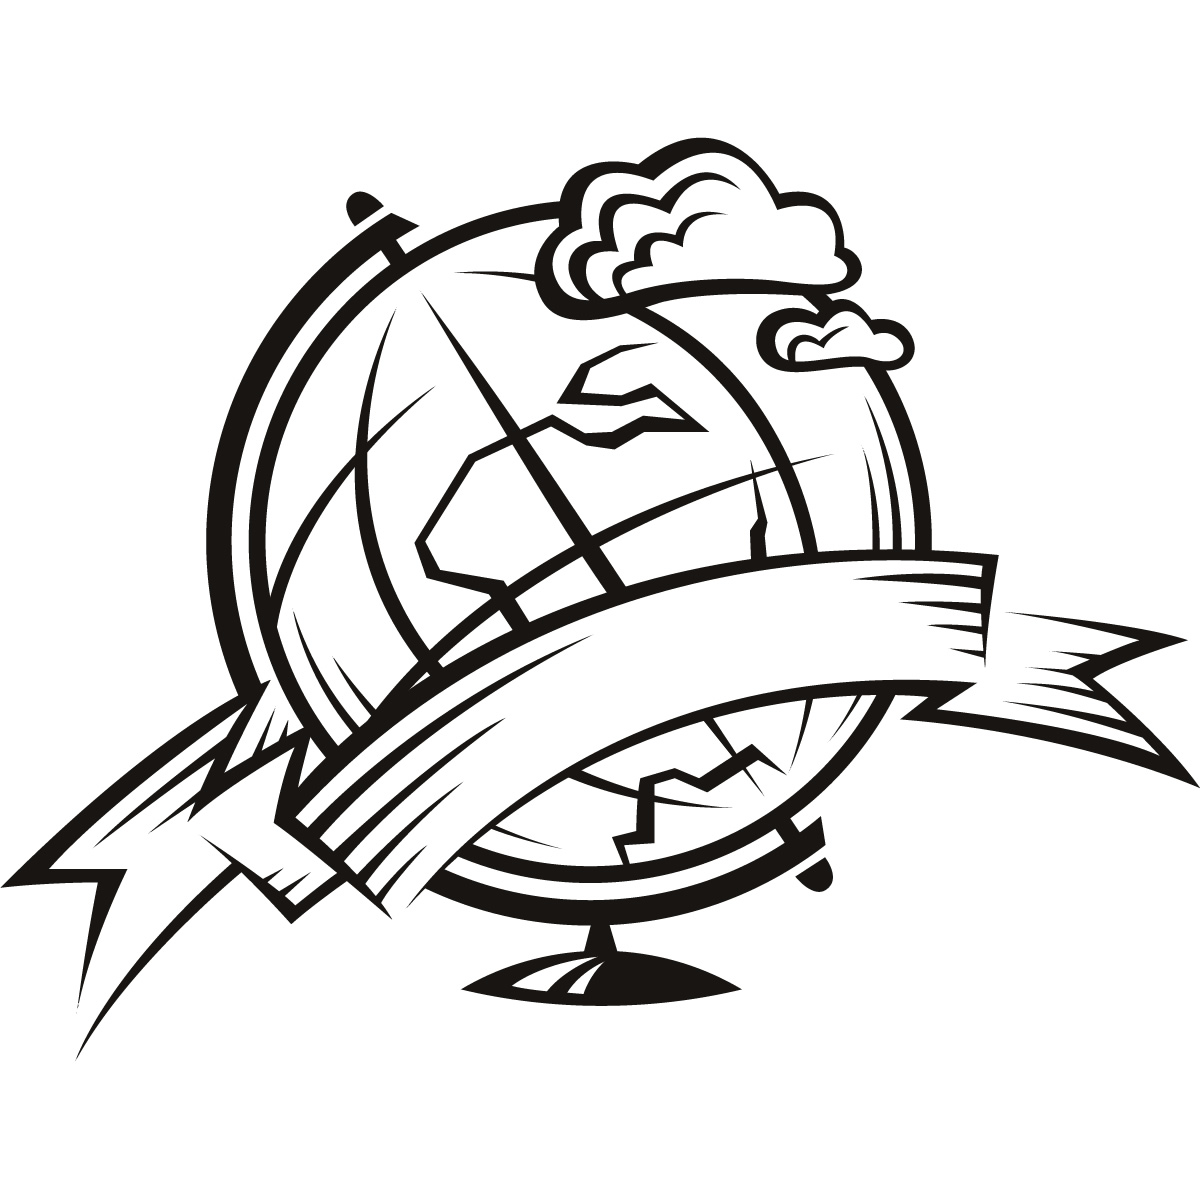 coloring pages world globe - photo#35